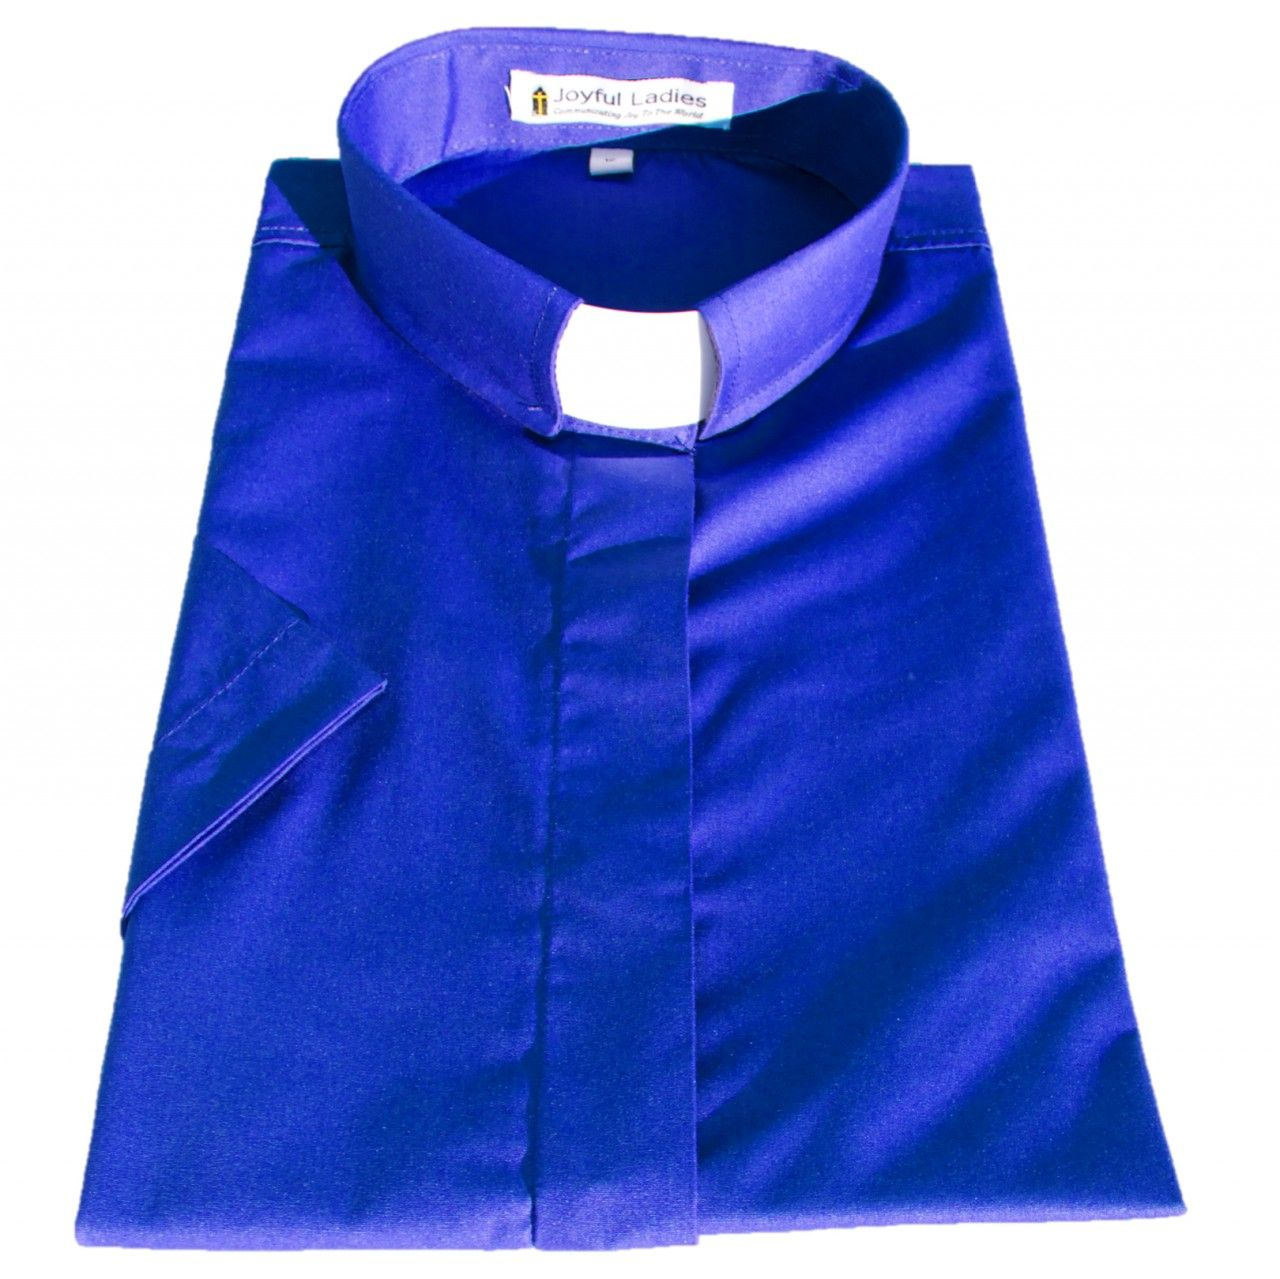 571. Women's Short-Sleeve Tab-Collar Clergy Shirt - Royal Blue